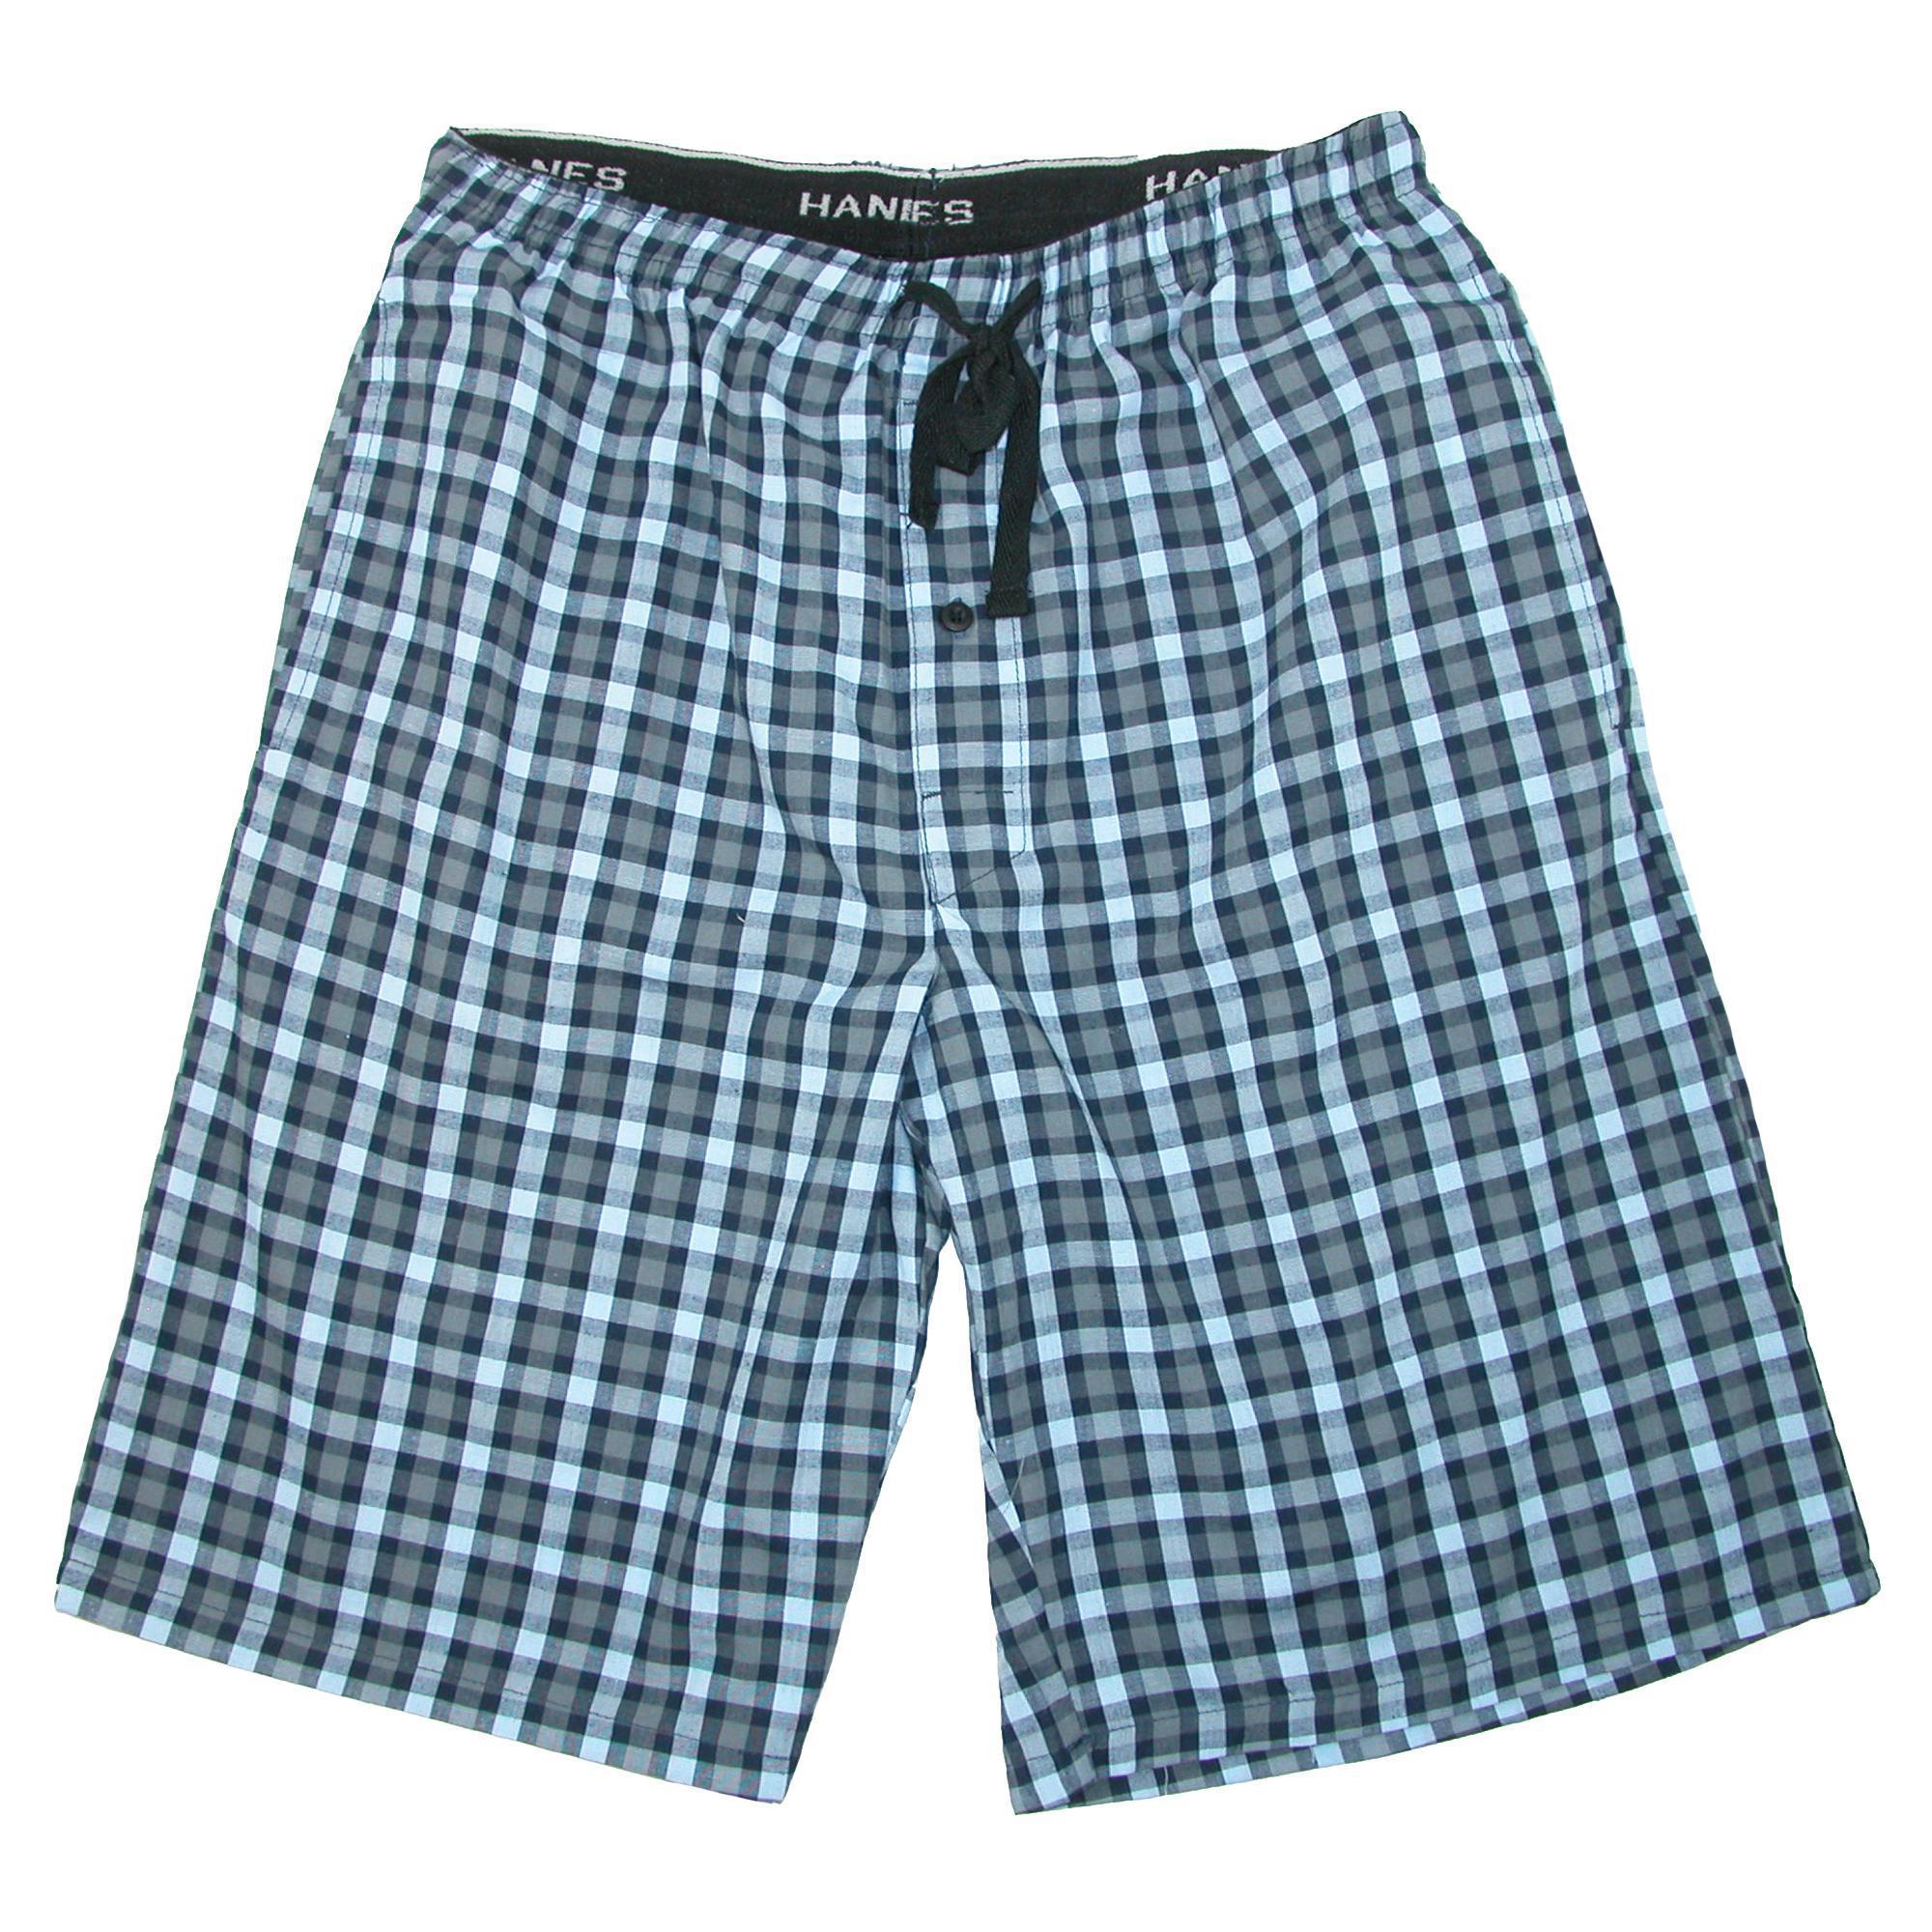 Hanes_Mens_Cotton_Madras_Drawstring_Sleep_Pajama_Shorts_